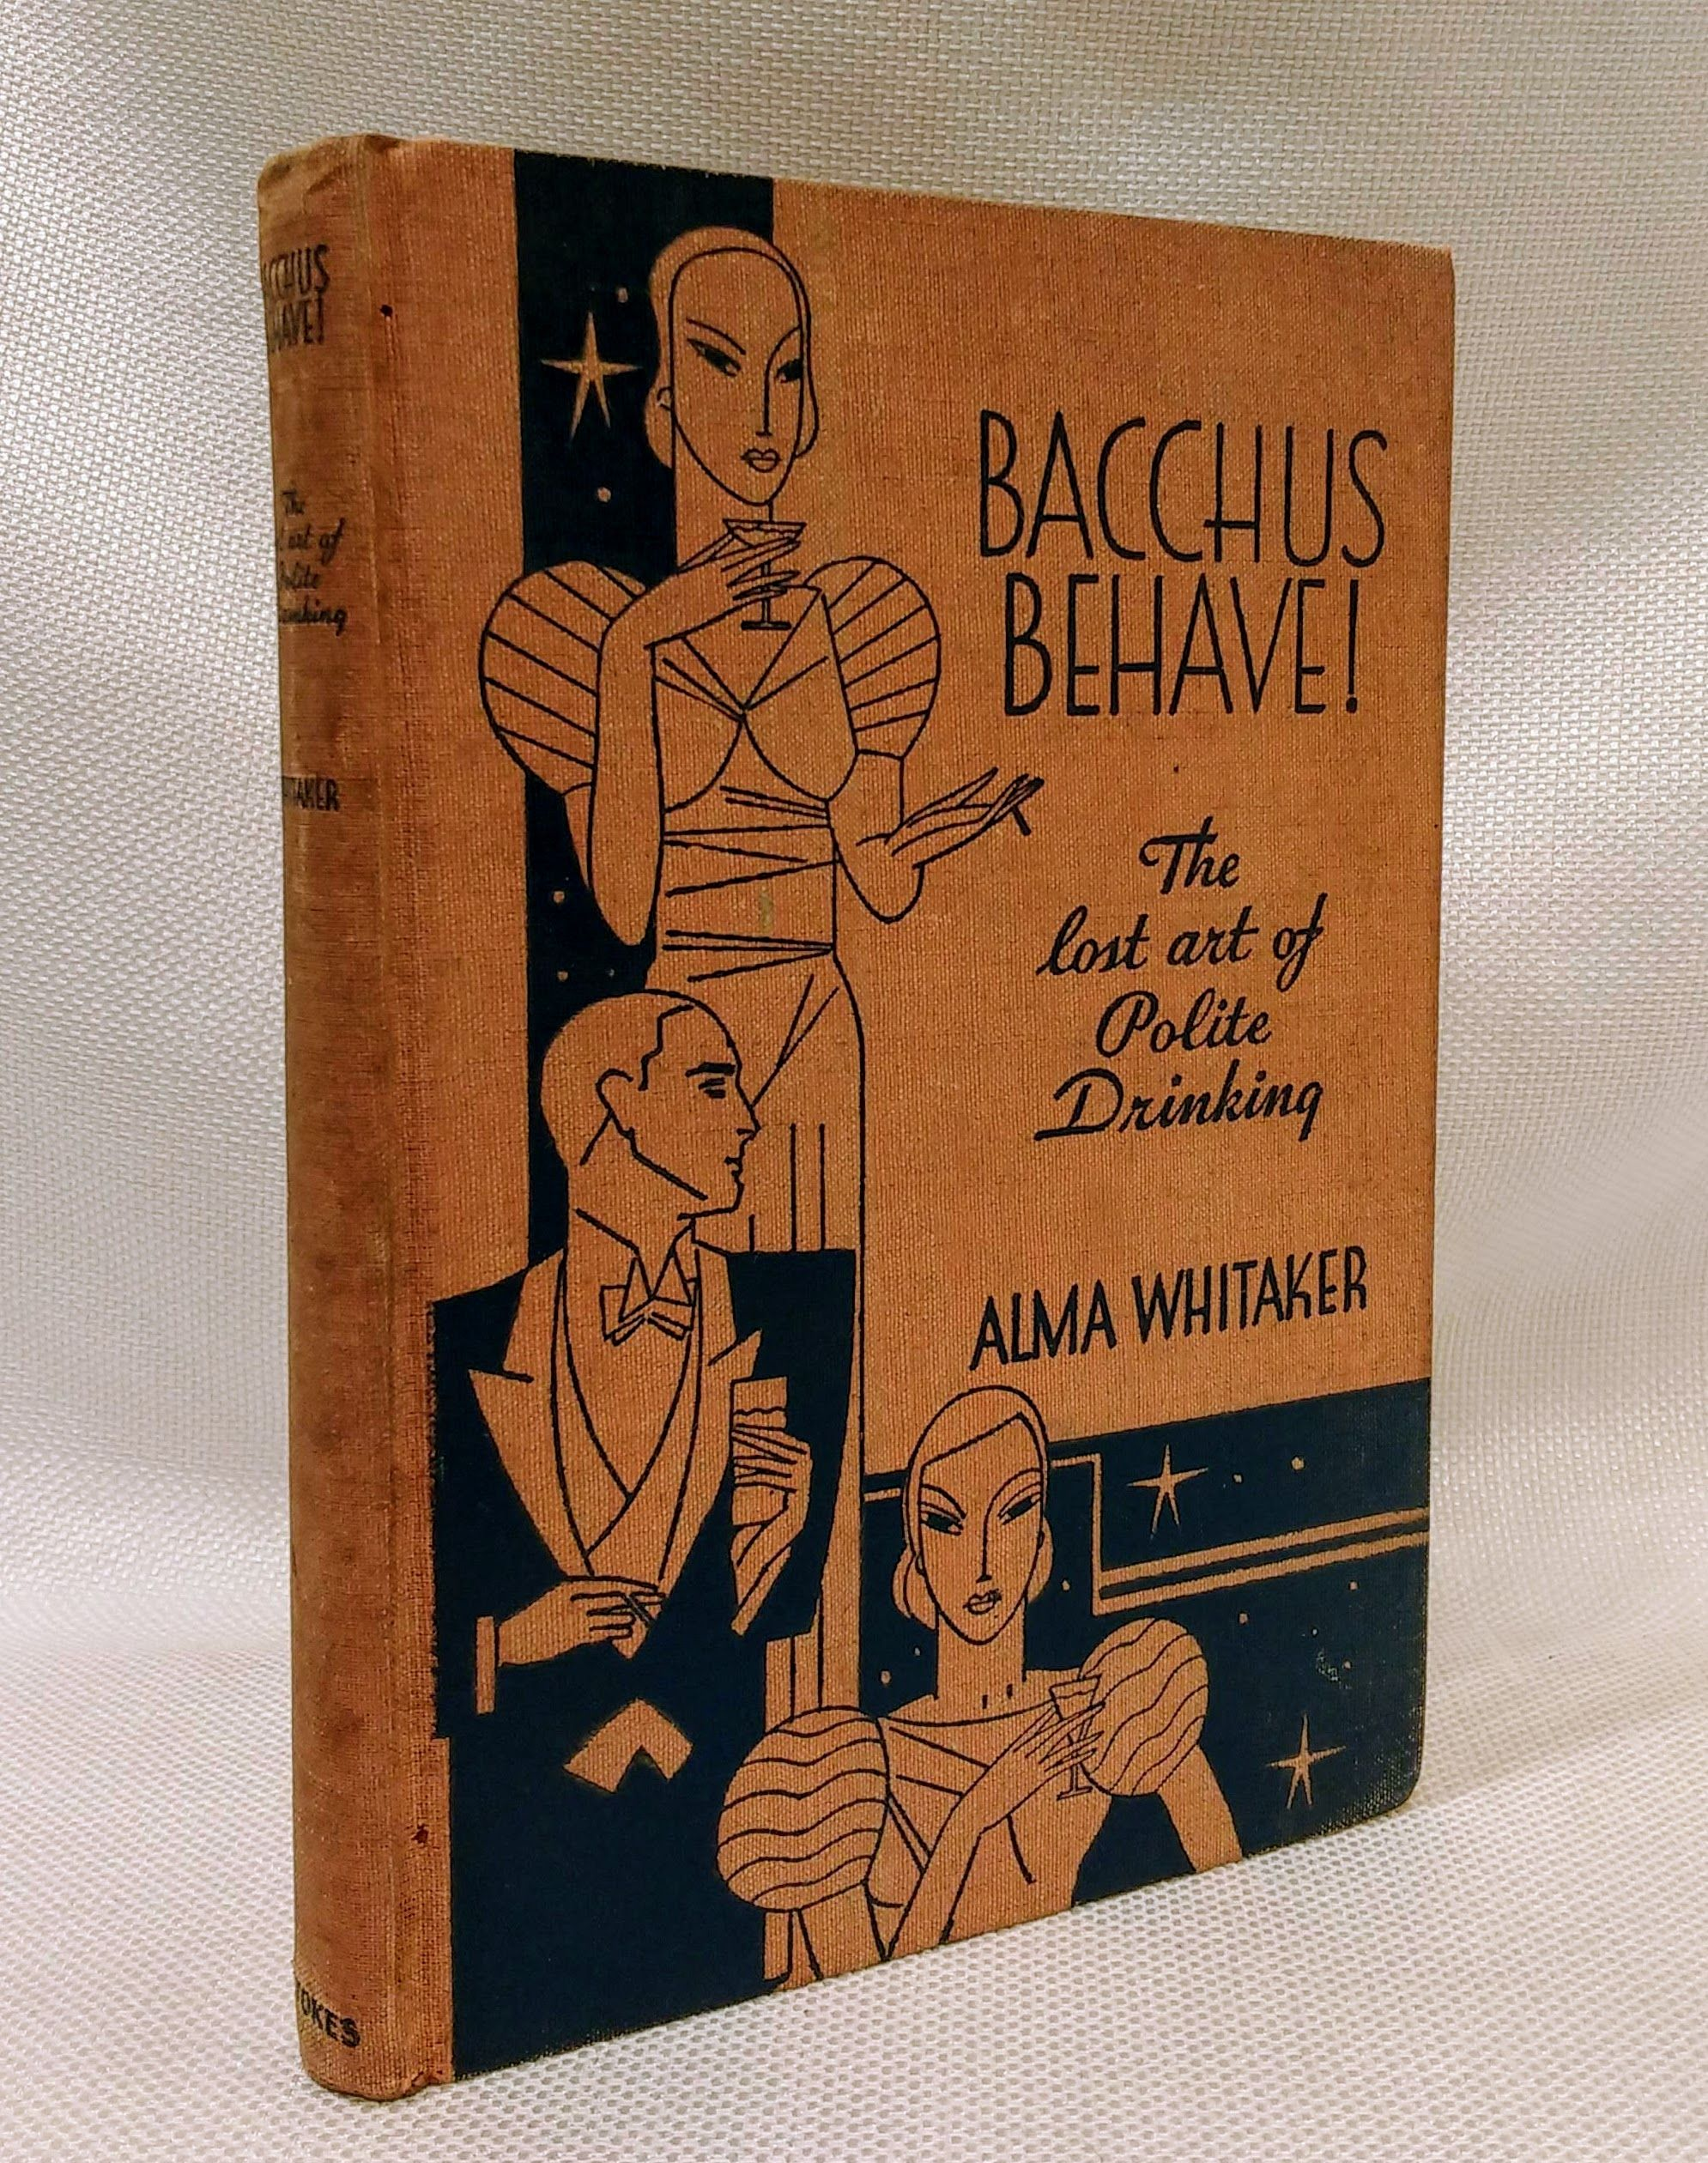 Bacchus behave!: The lost art of polite drinking,, Whitaker, Alma Fullford